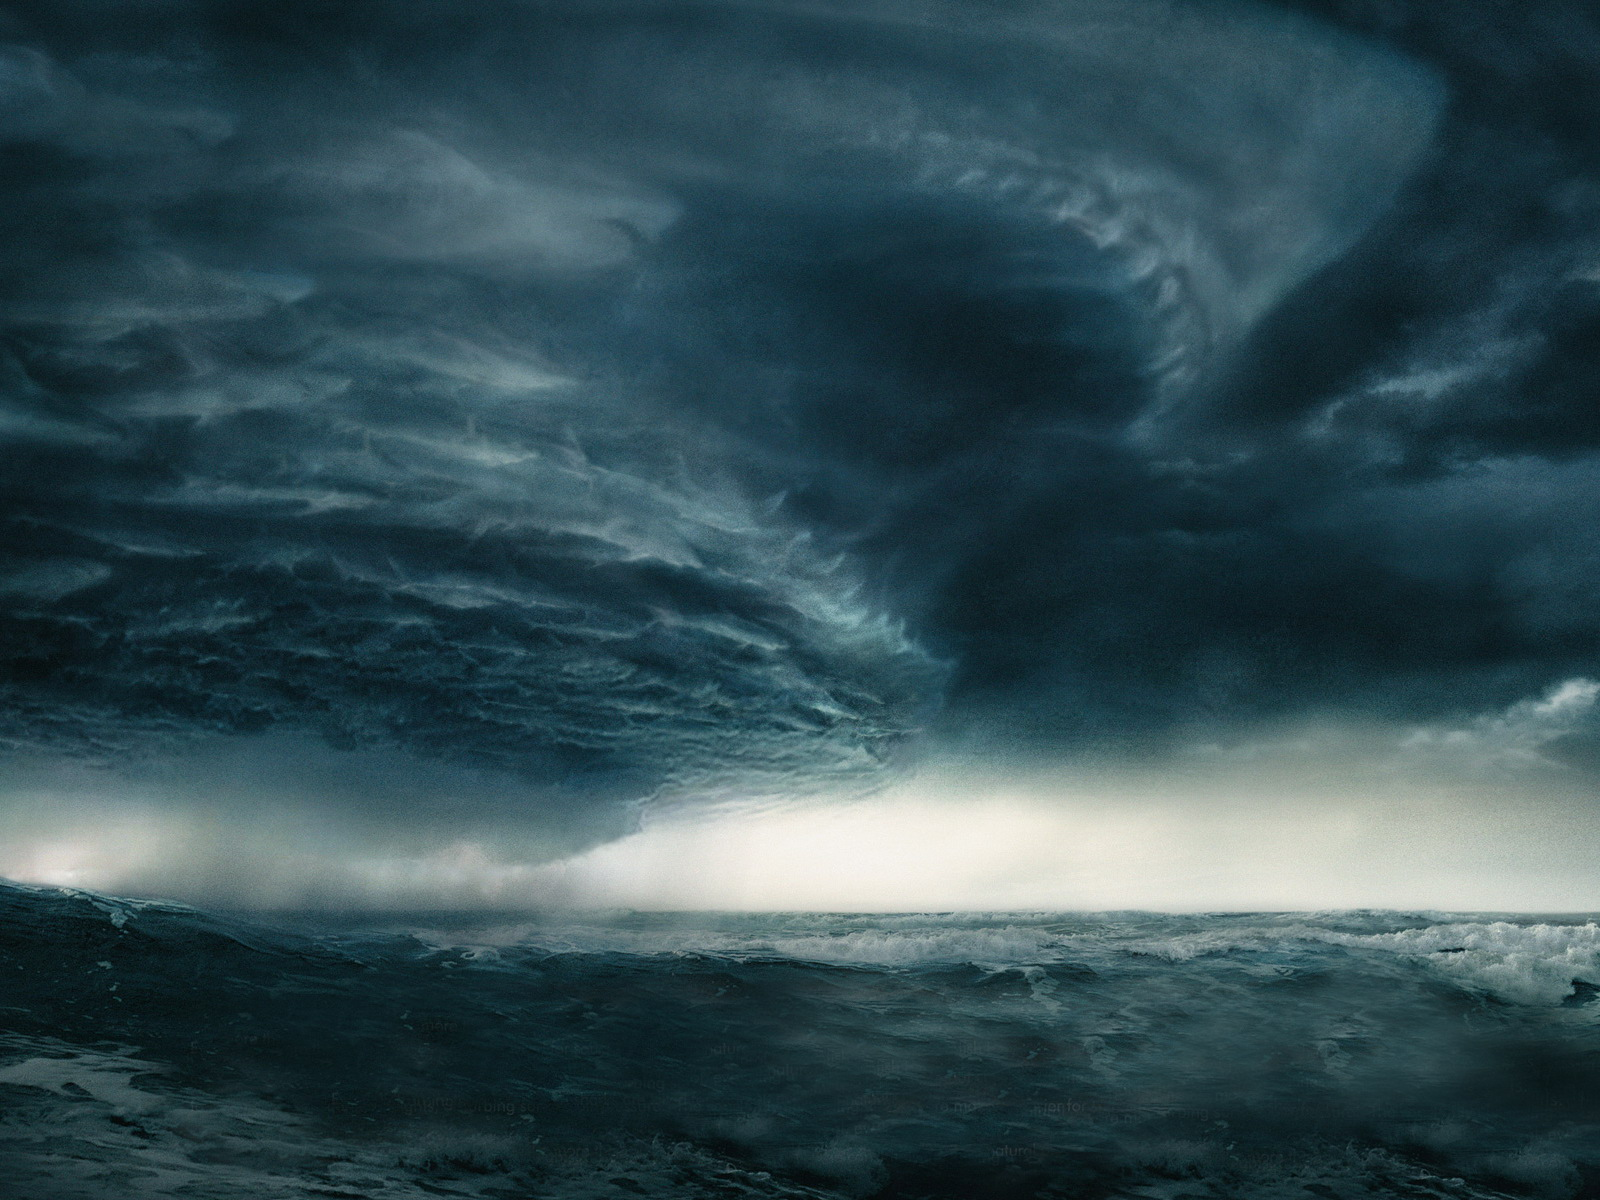 Dark Stormy Ocean Wallpaper - Viewing Gallery